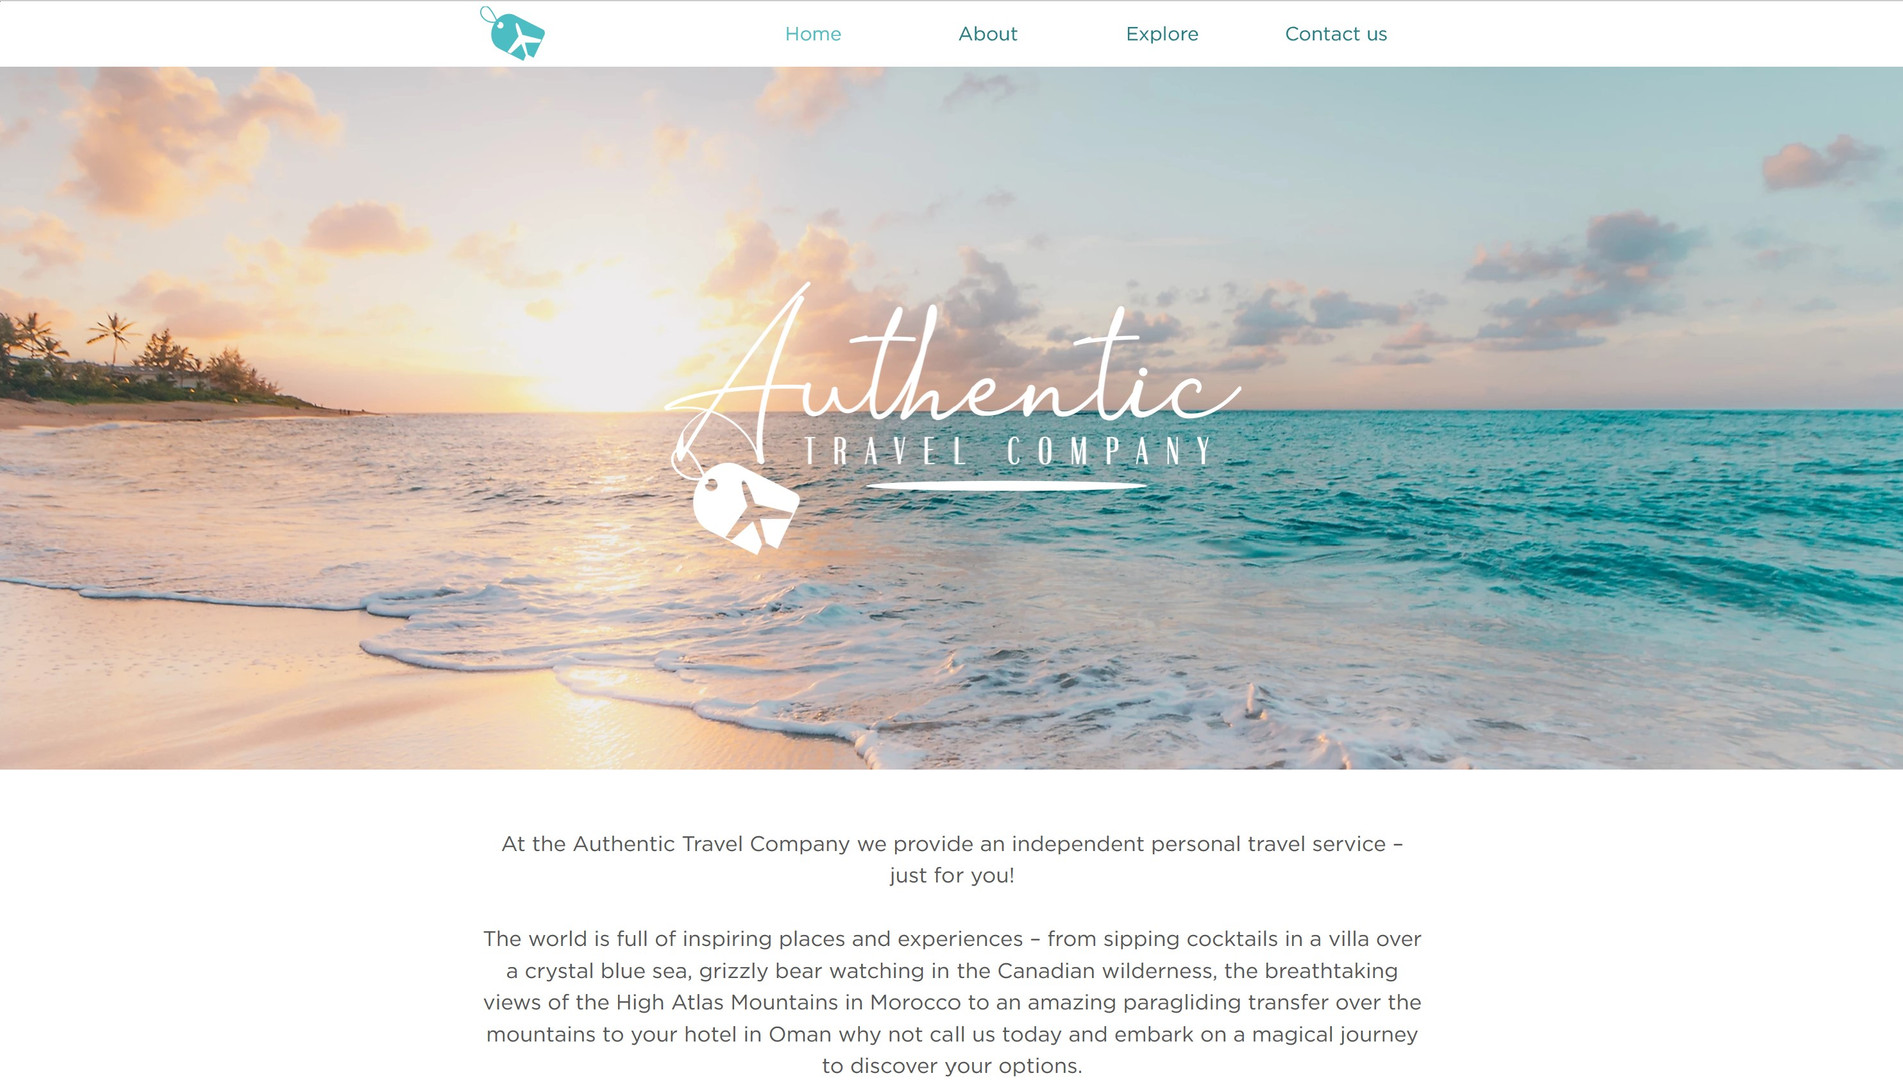 Authentic Travel Company